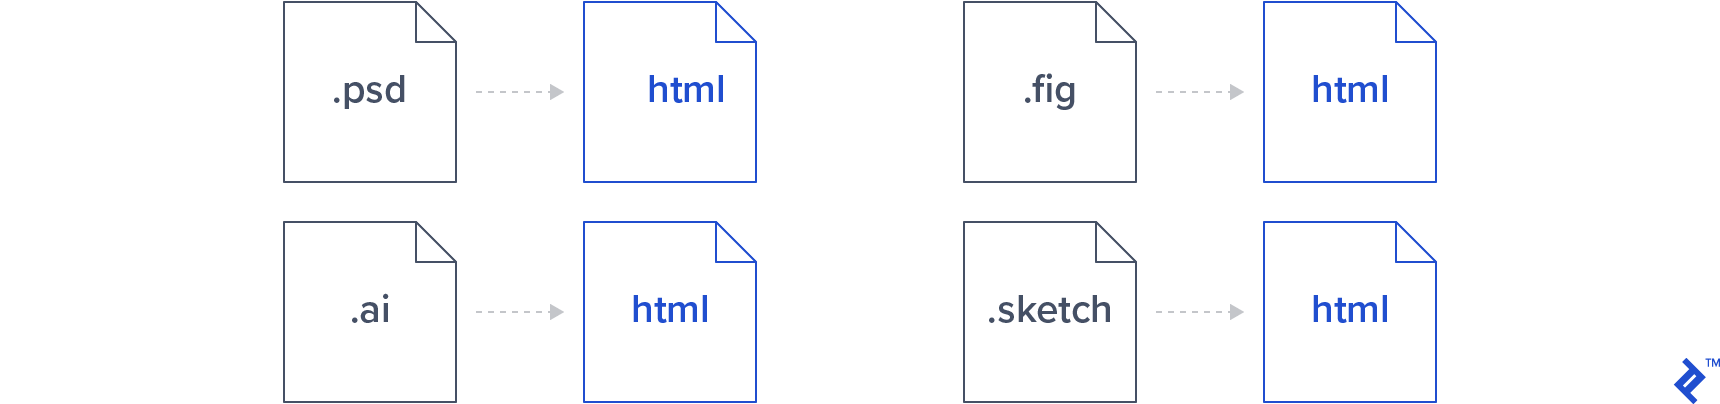 Illustration of various HTML/CSS components and formats